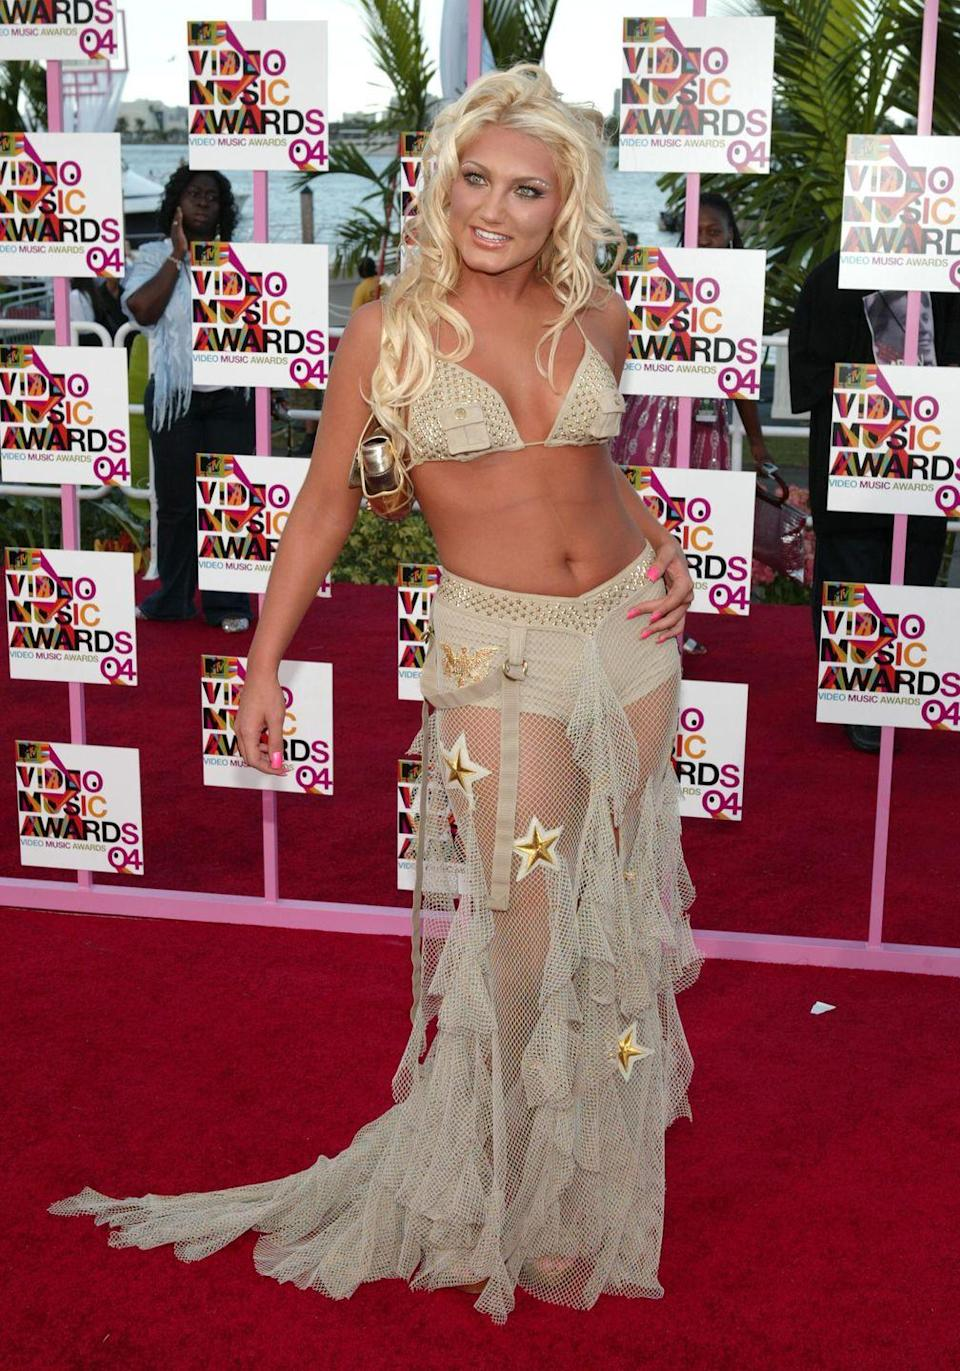 <p>The <em>Hogan Knows Best</em> star, Brooke Hogan, poses at the 2004 MTV Video Music Awards in beige on beige greatness. The entire Hogan family starred in VH1's <em>Hogan Knows Best</em> for four seasons before Brooke landed her own spin-off <em>Brooke Knows Best, </em>which lasted for two.</p>